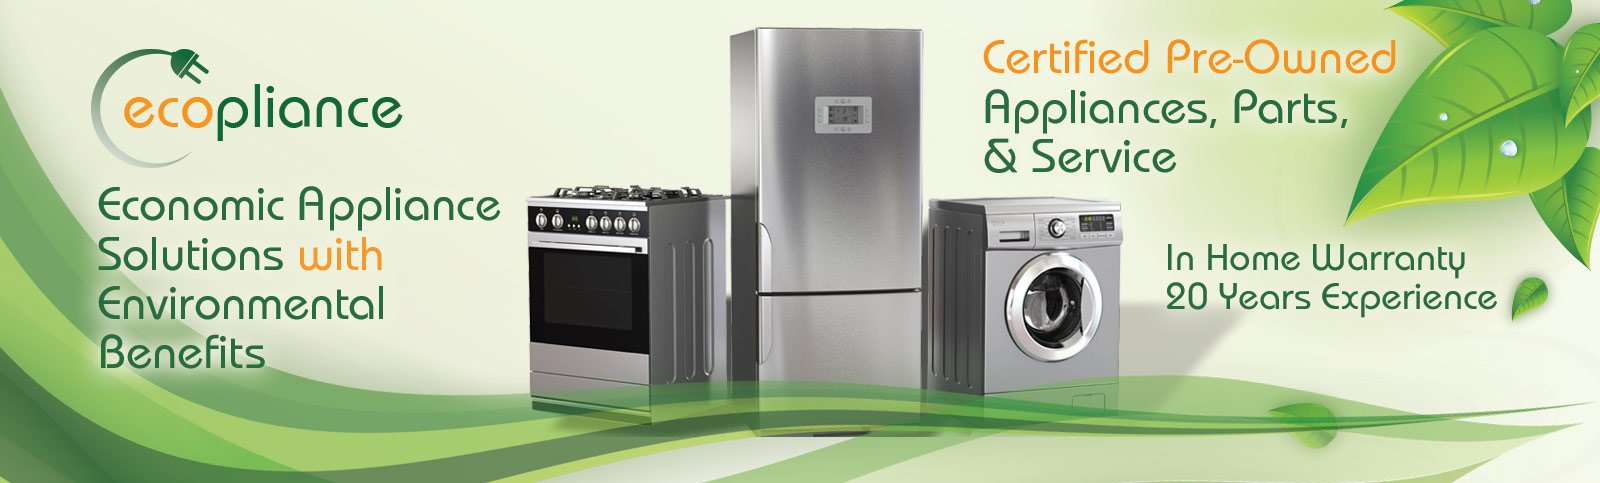 Appliance Store In Colorado Springs, CO | Appliance Store Near Me ...